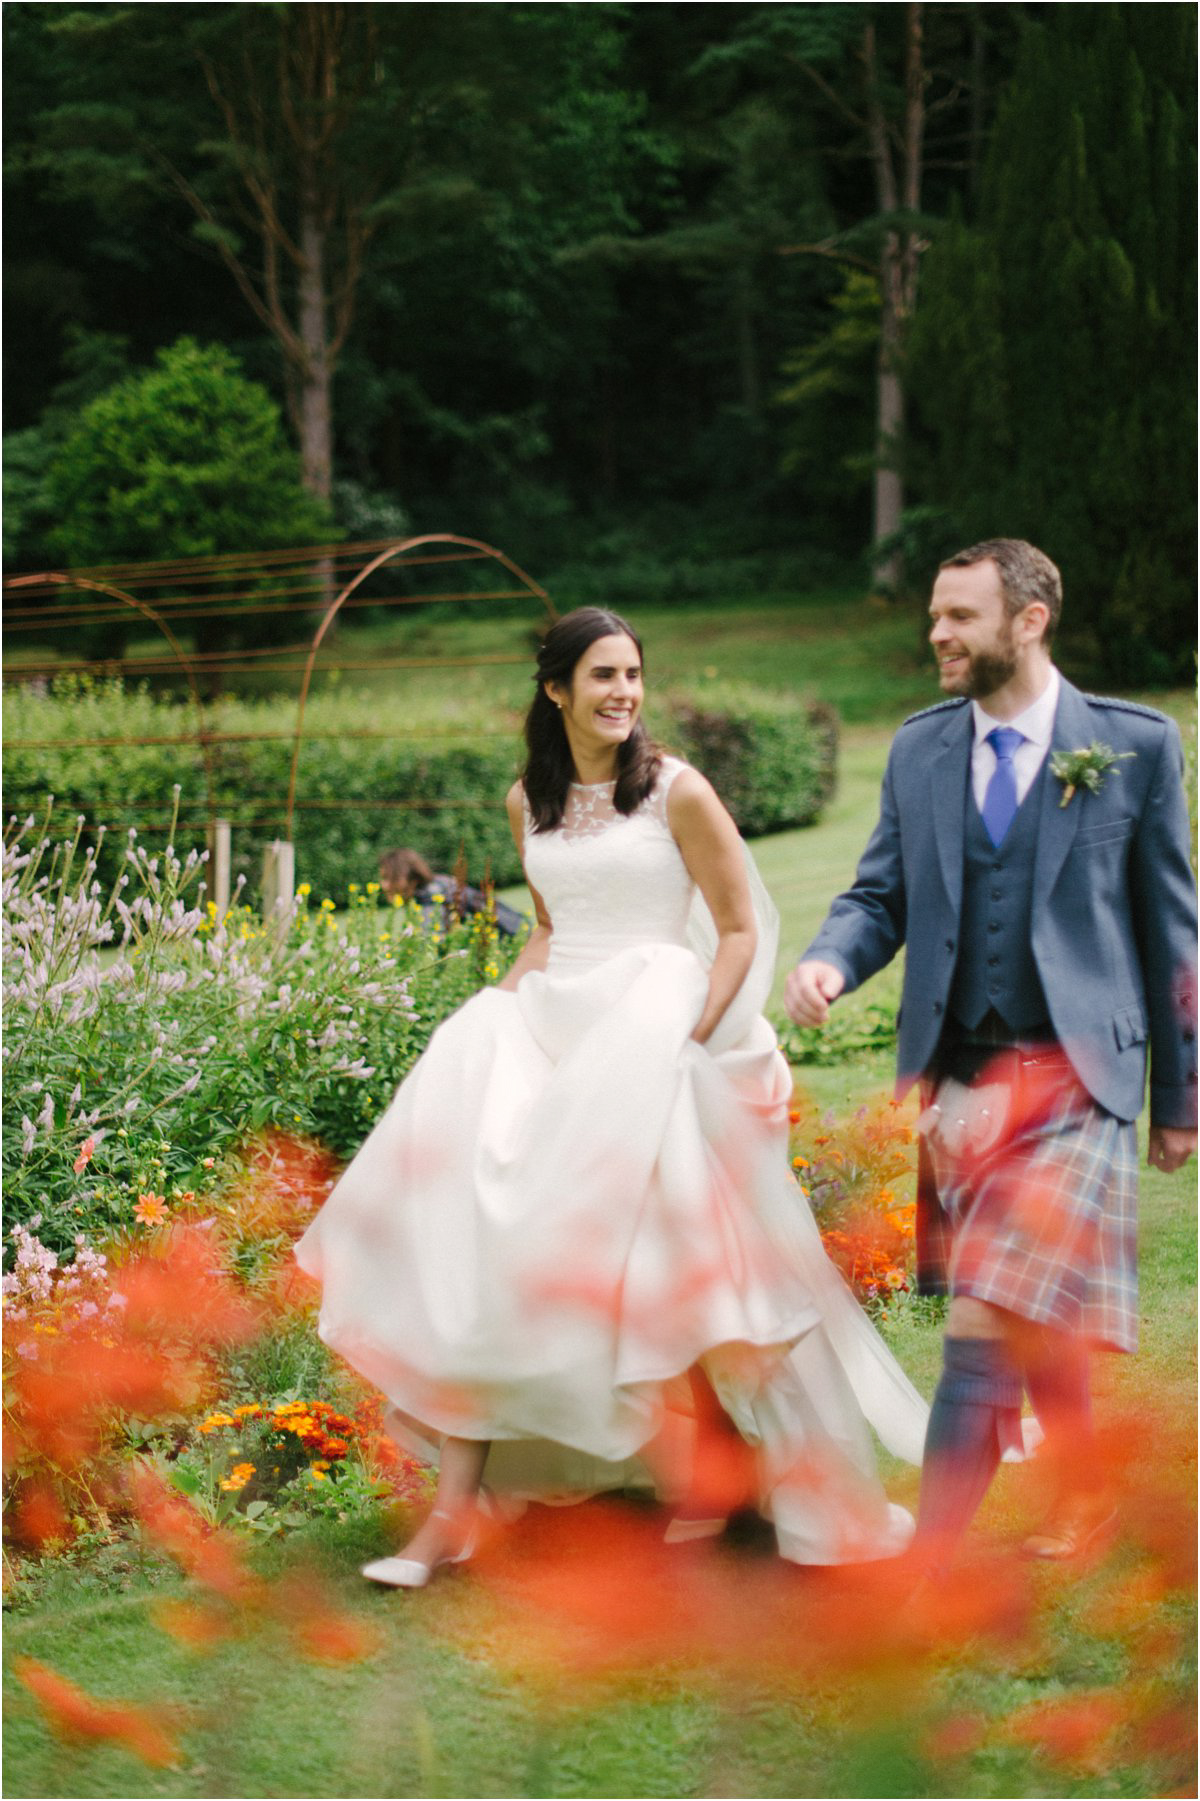 Newly married couple walking among red flowers in a garden of Blairquhan castle in Scotland by Cro & Kow